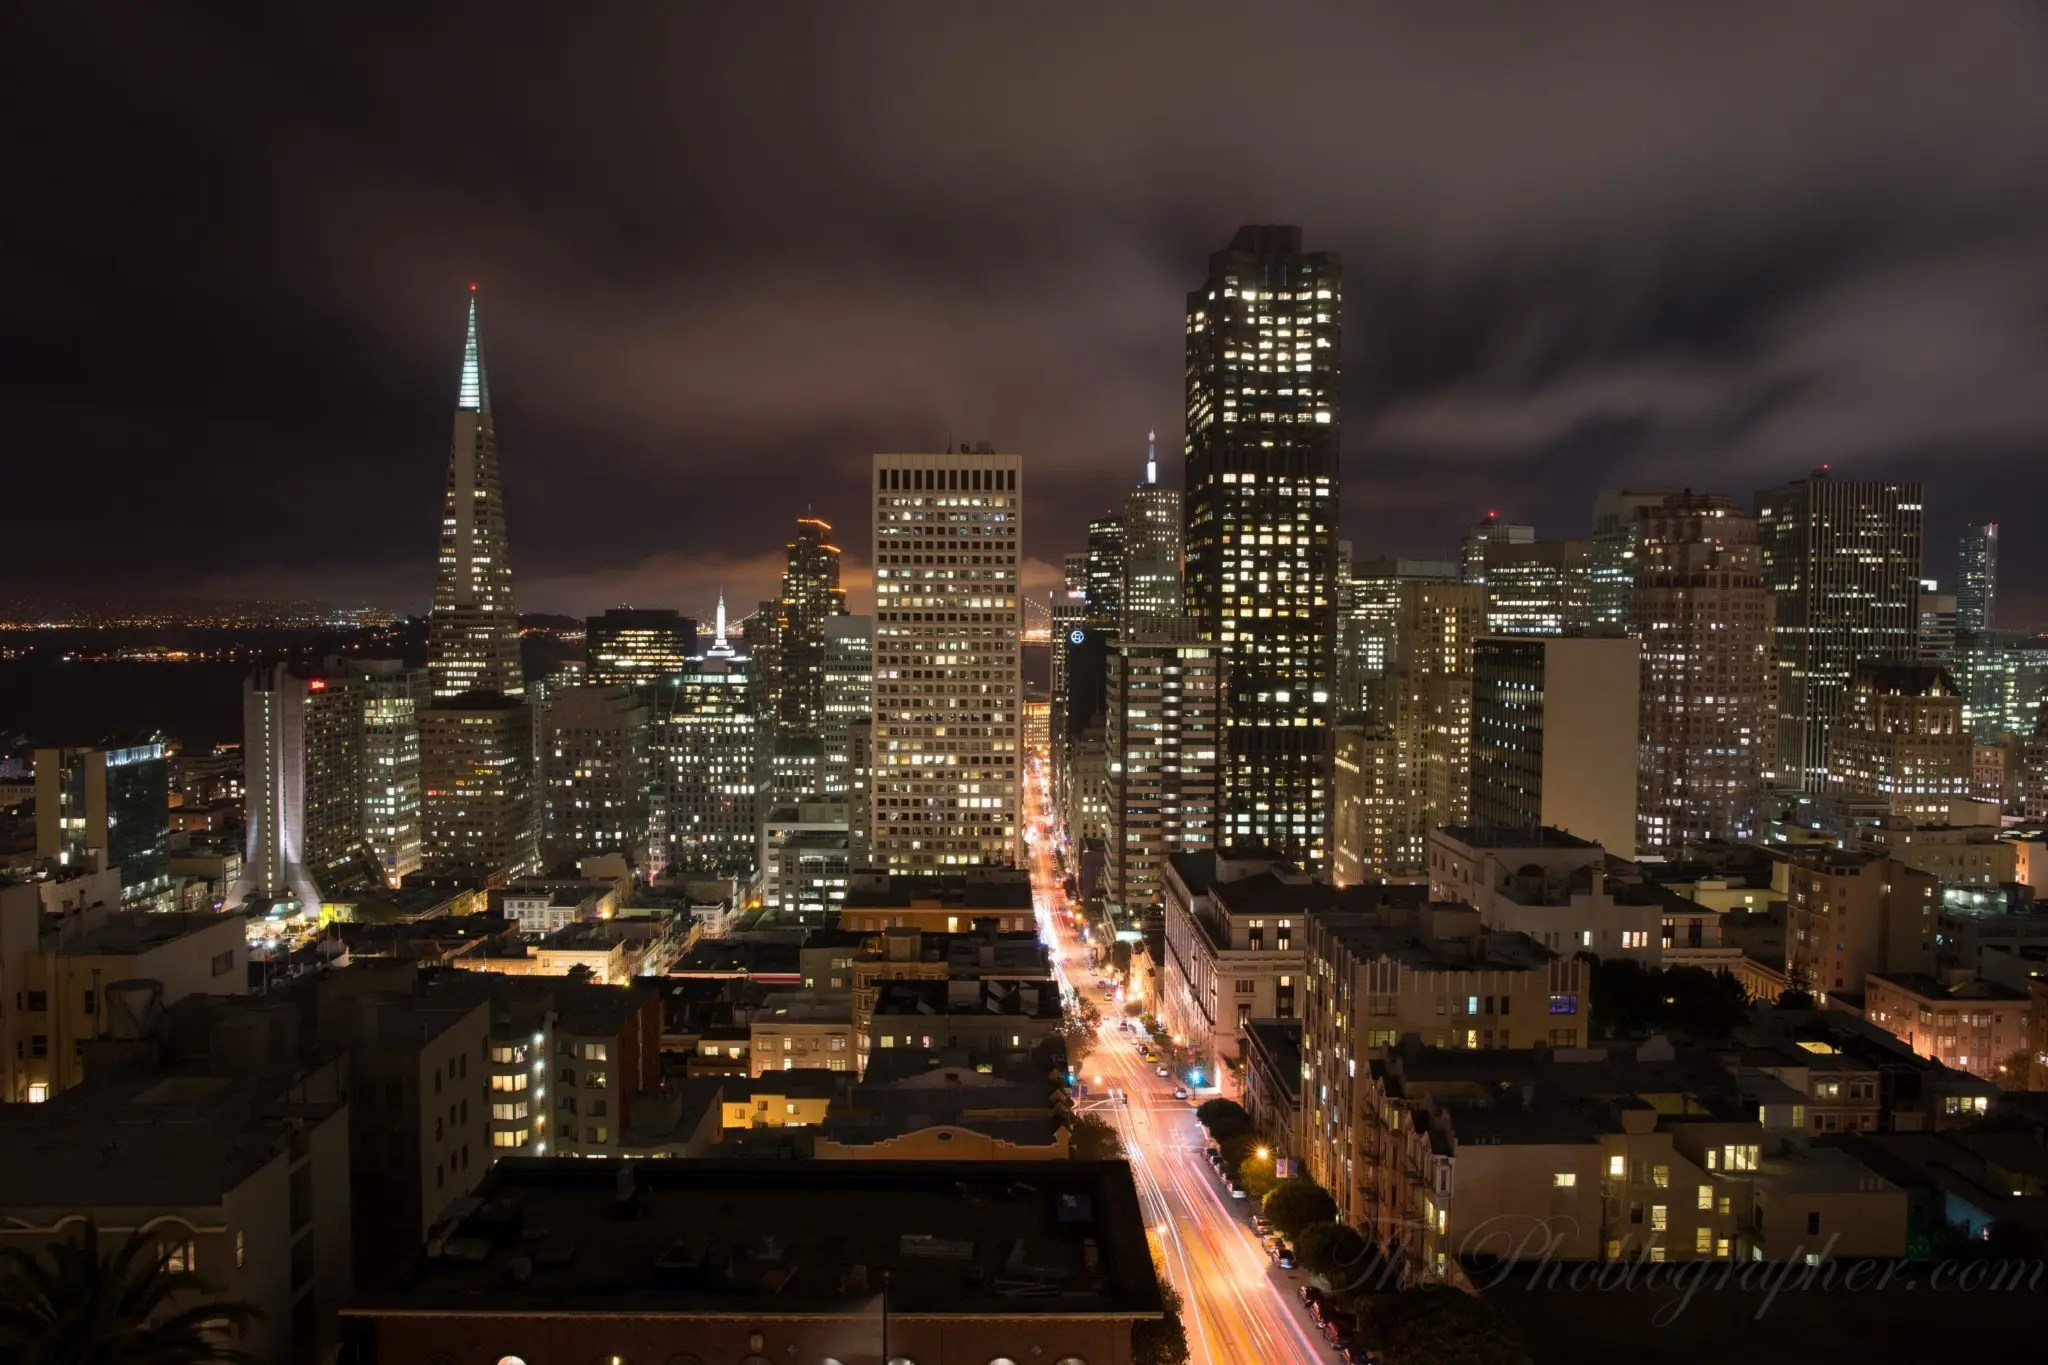 High Iso Cityscape Image Sample From The Sony A99 And A